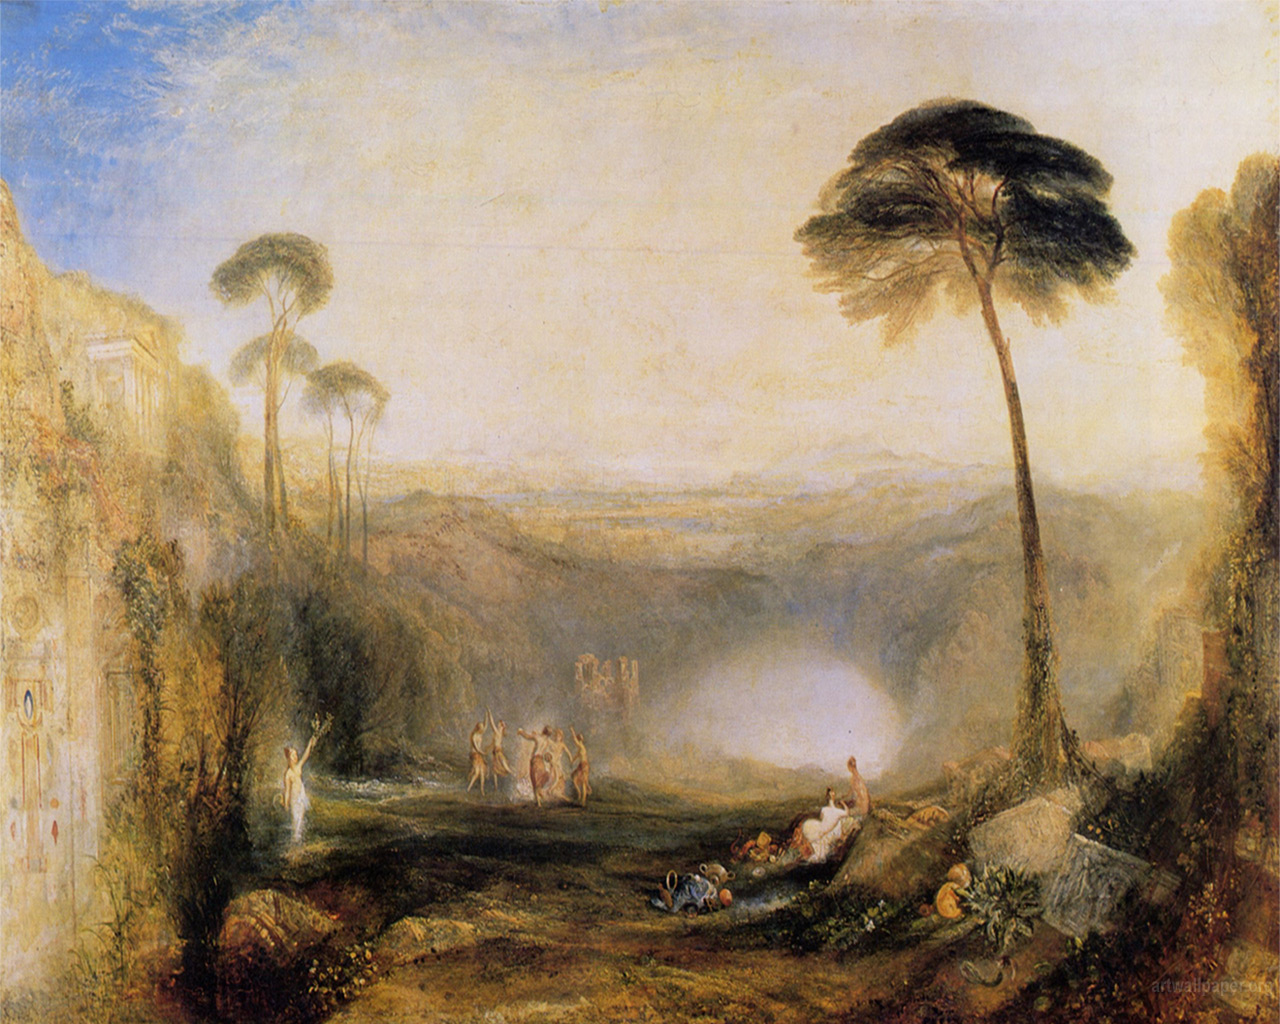 The Golden Bough by British painter J. M. W. Turner